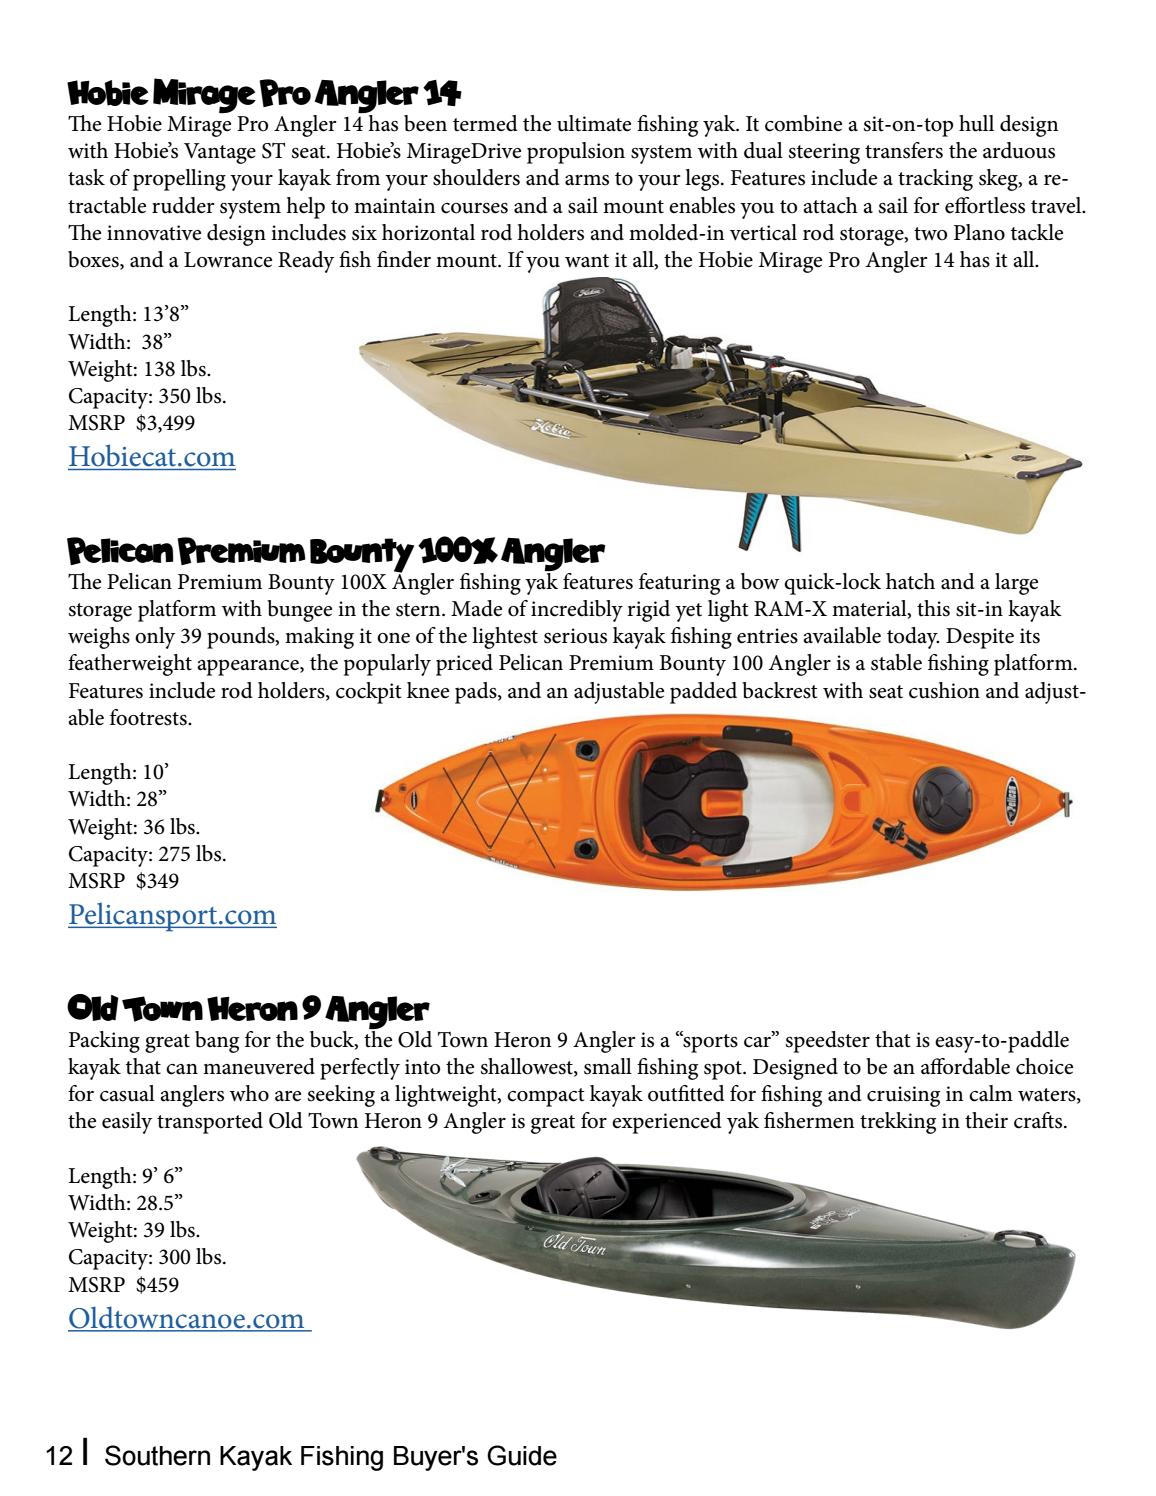 Southern Kayak Fishing Buyer's Guide by Southern Unlimited